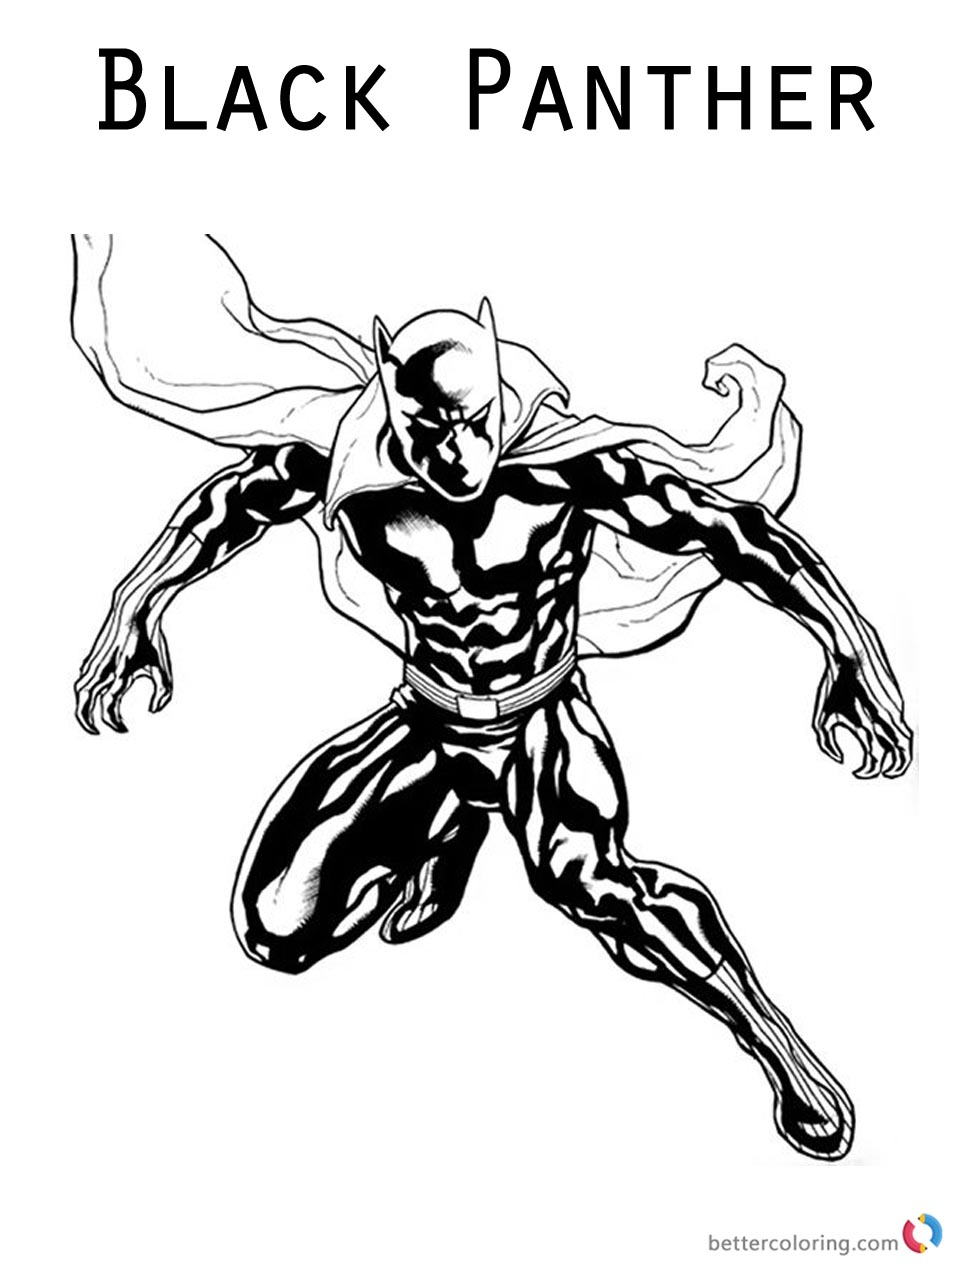 Movie black panther coloring pages jumping to fight free printable